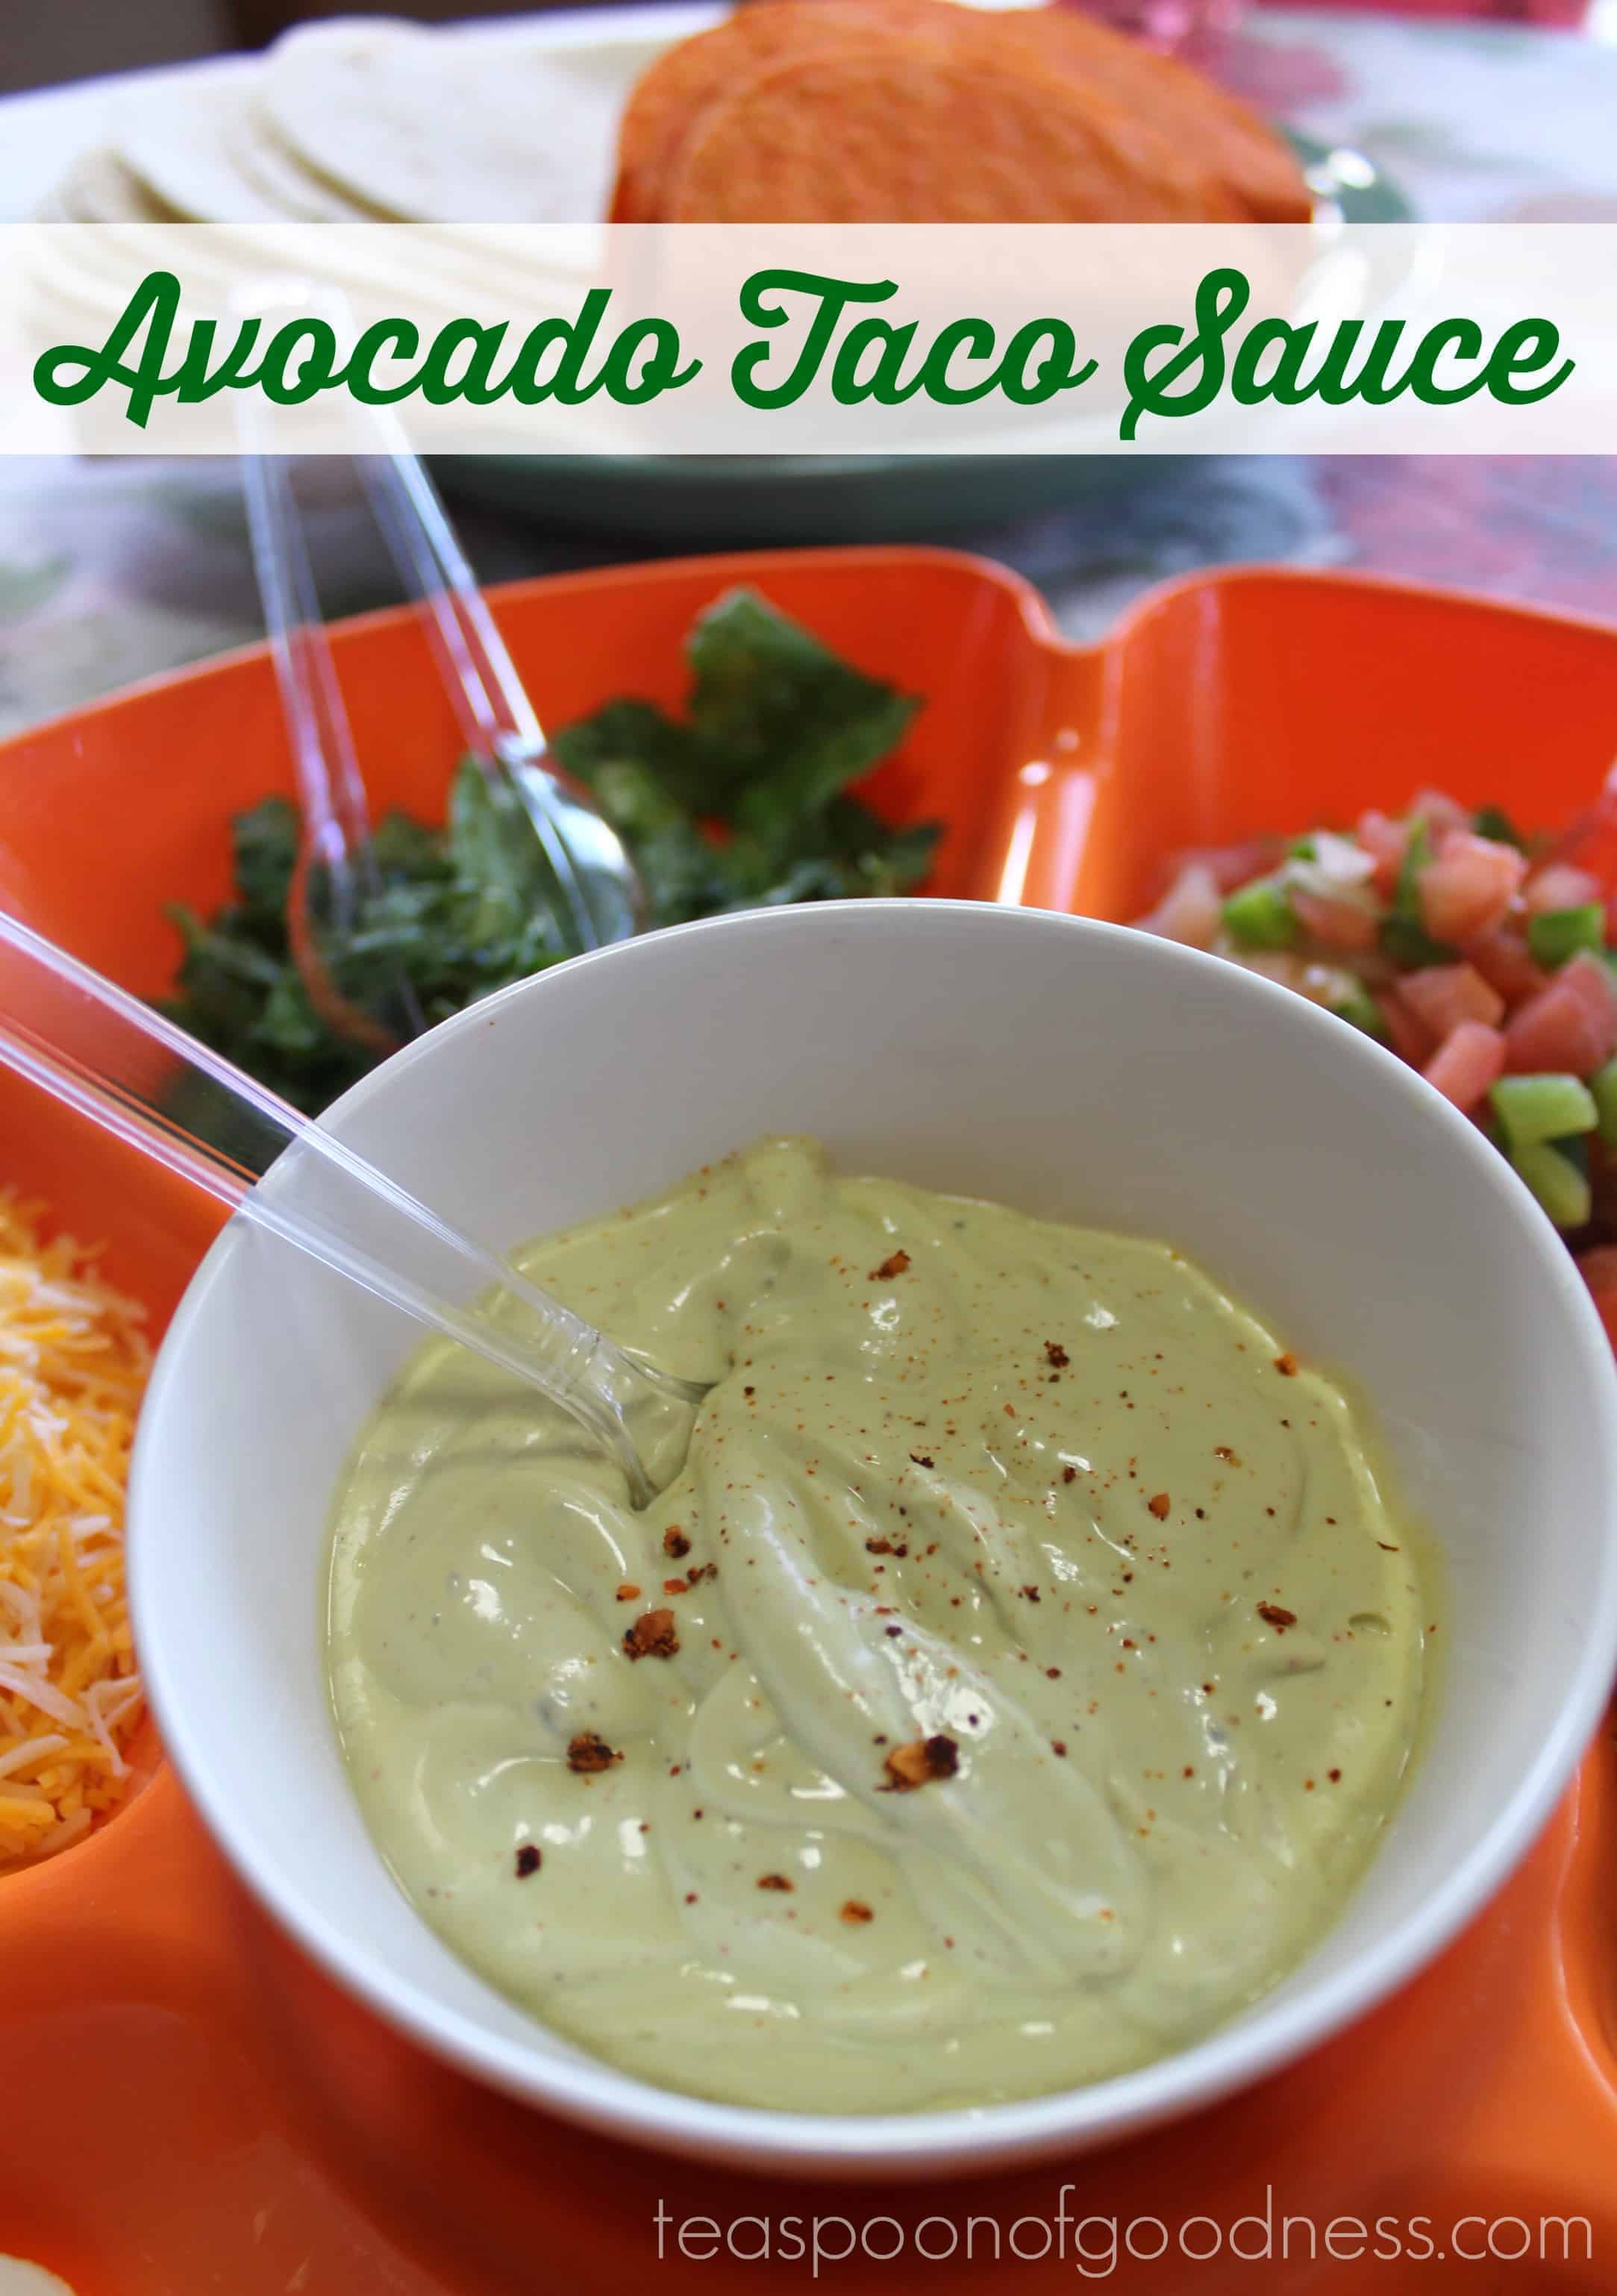 Take Taco Tuesday to the next level with this 5 ingredient Avocado Taco Sauce. Talk about a quick to make sauce that will have everyone talking!